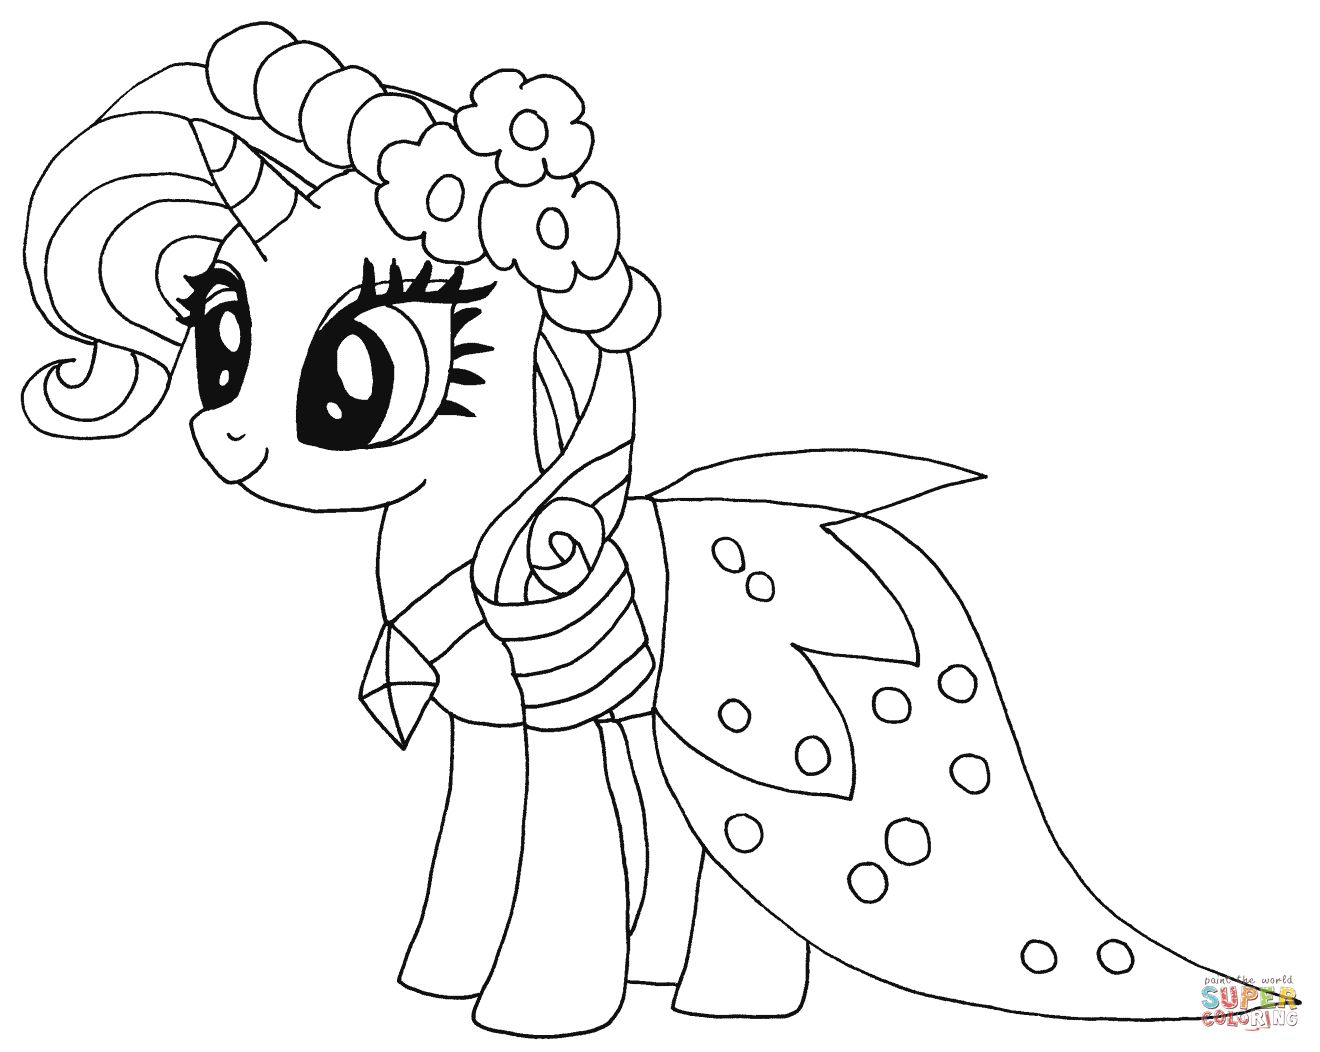 My Little Pony Coloring Pages My Little Pony Coloring Pages Free Coloring Pages Albanysinsanity Com My Little Pony Coloring Disney Princess Coloring Pages My Little Pony Rarity